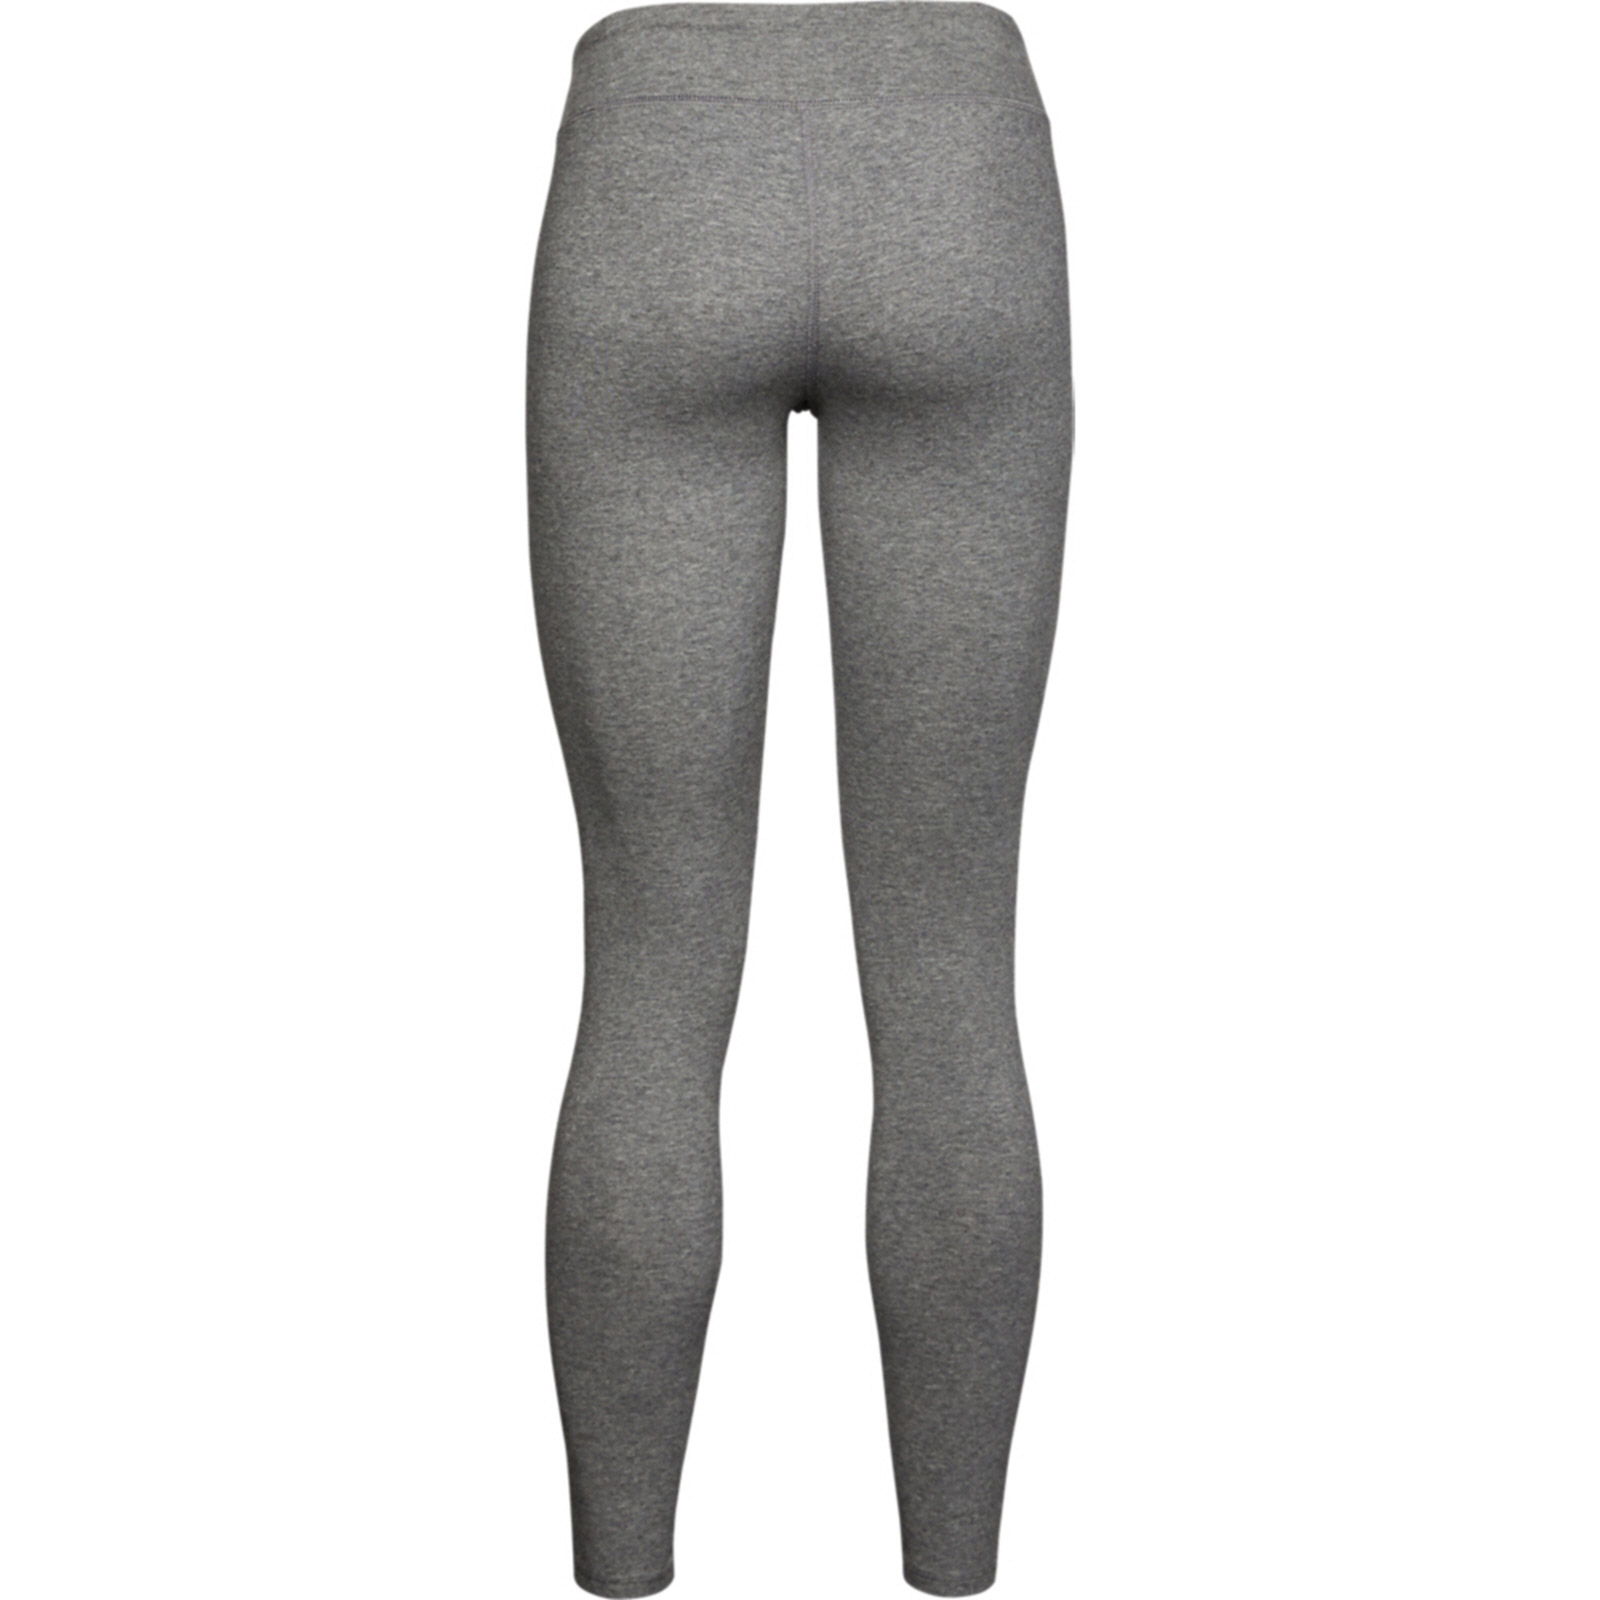 Under Armour Women's Favorite Leggings, Grey